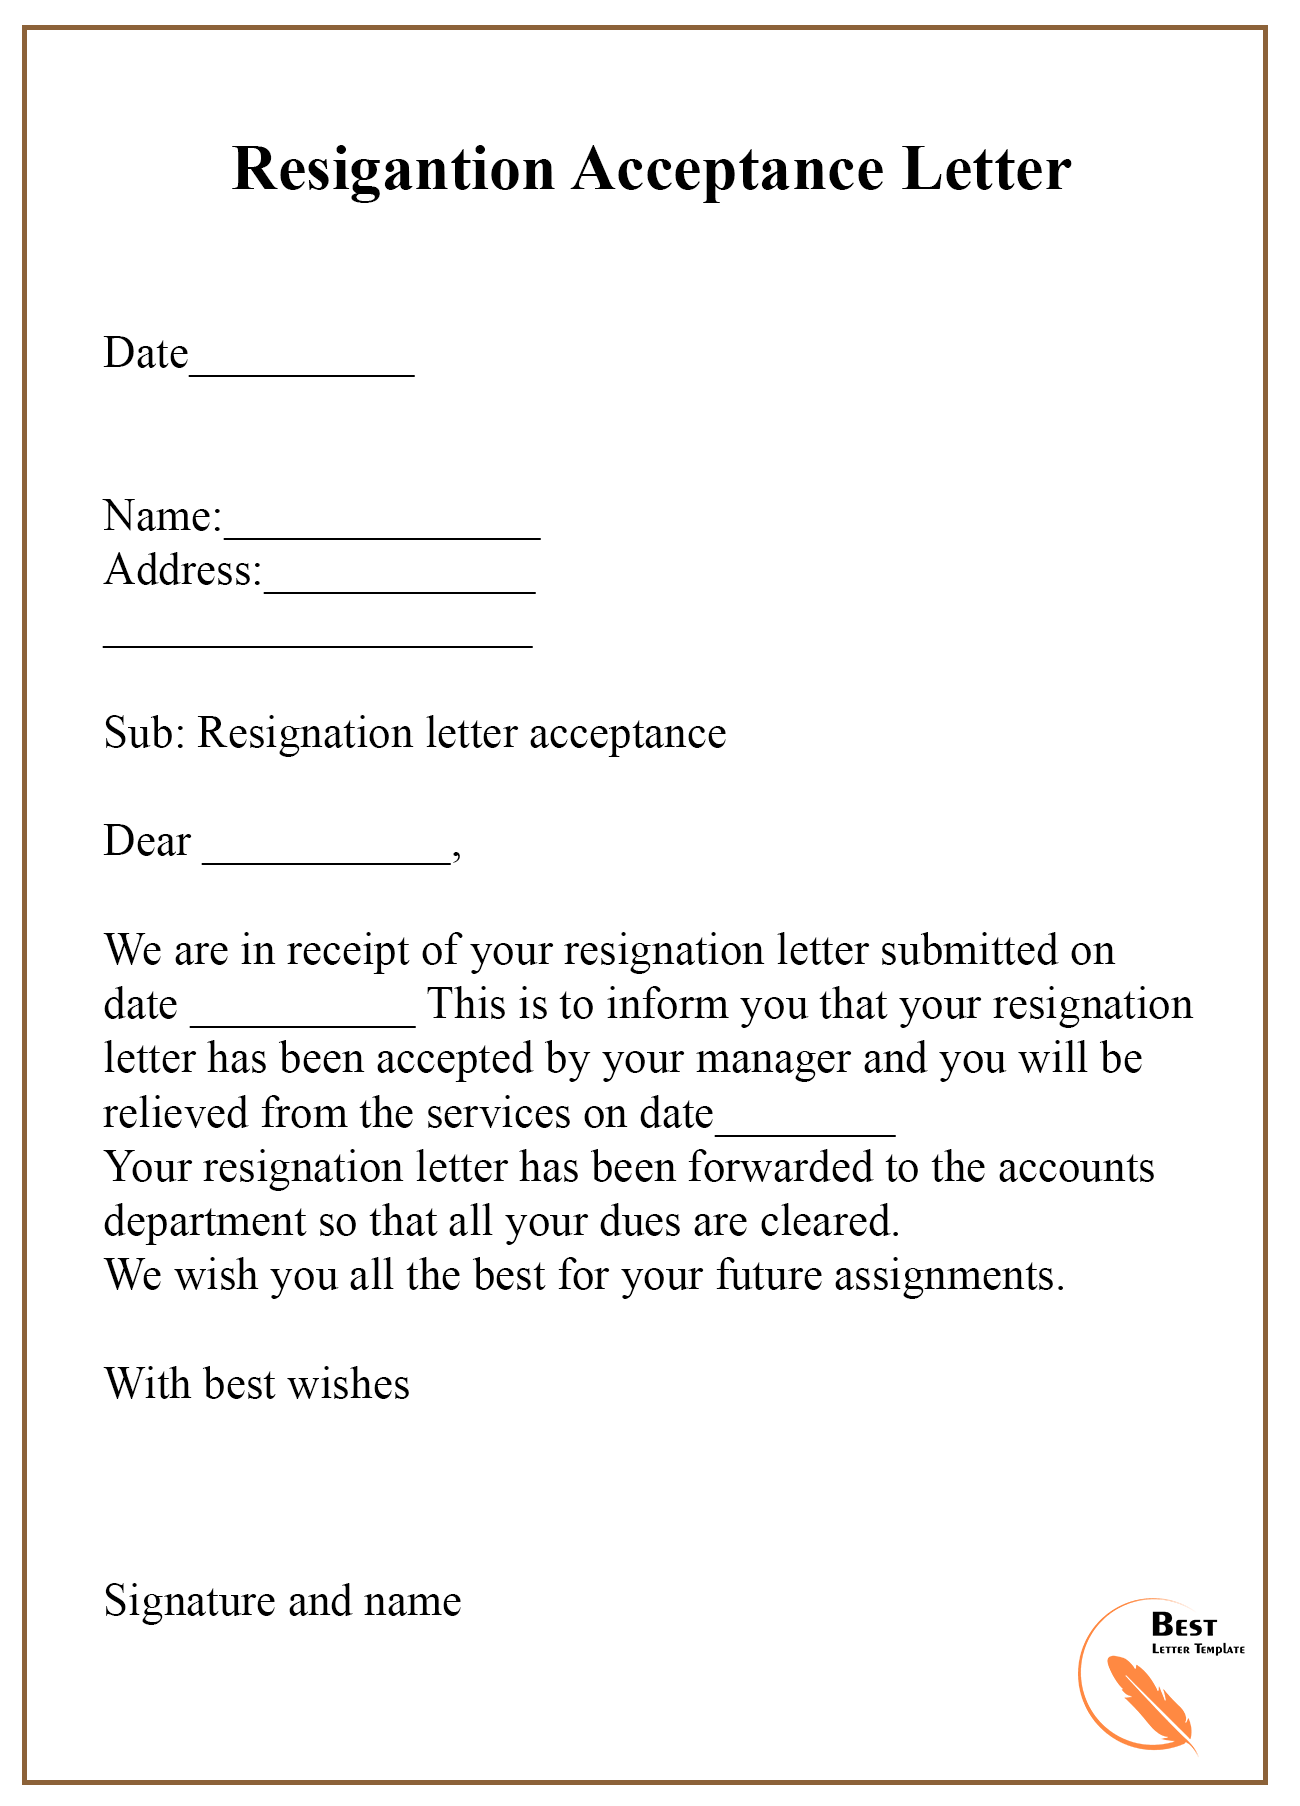 9+ Resignation Acceptance Letter Template [Examples ...